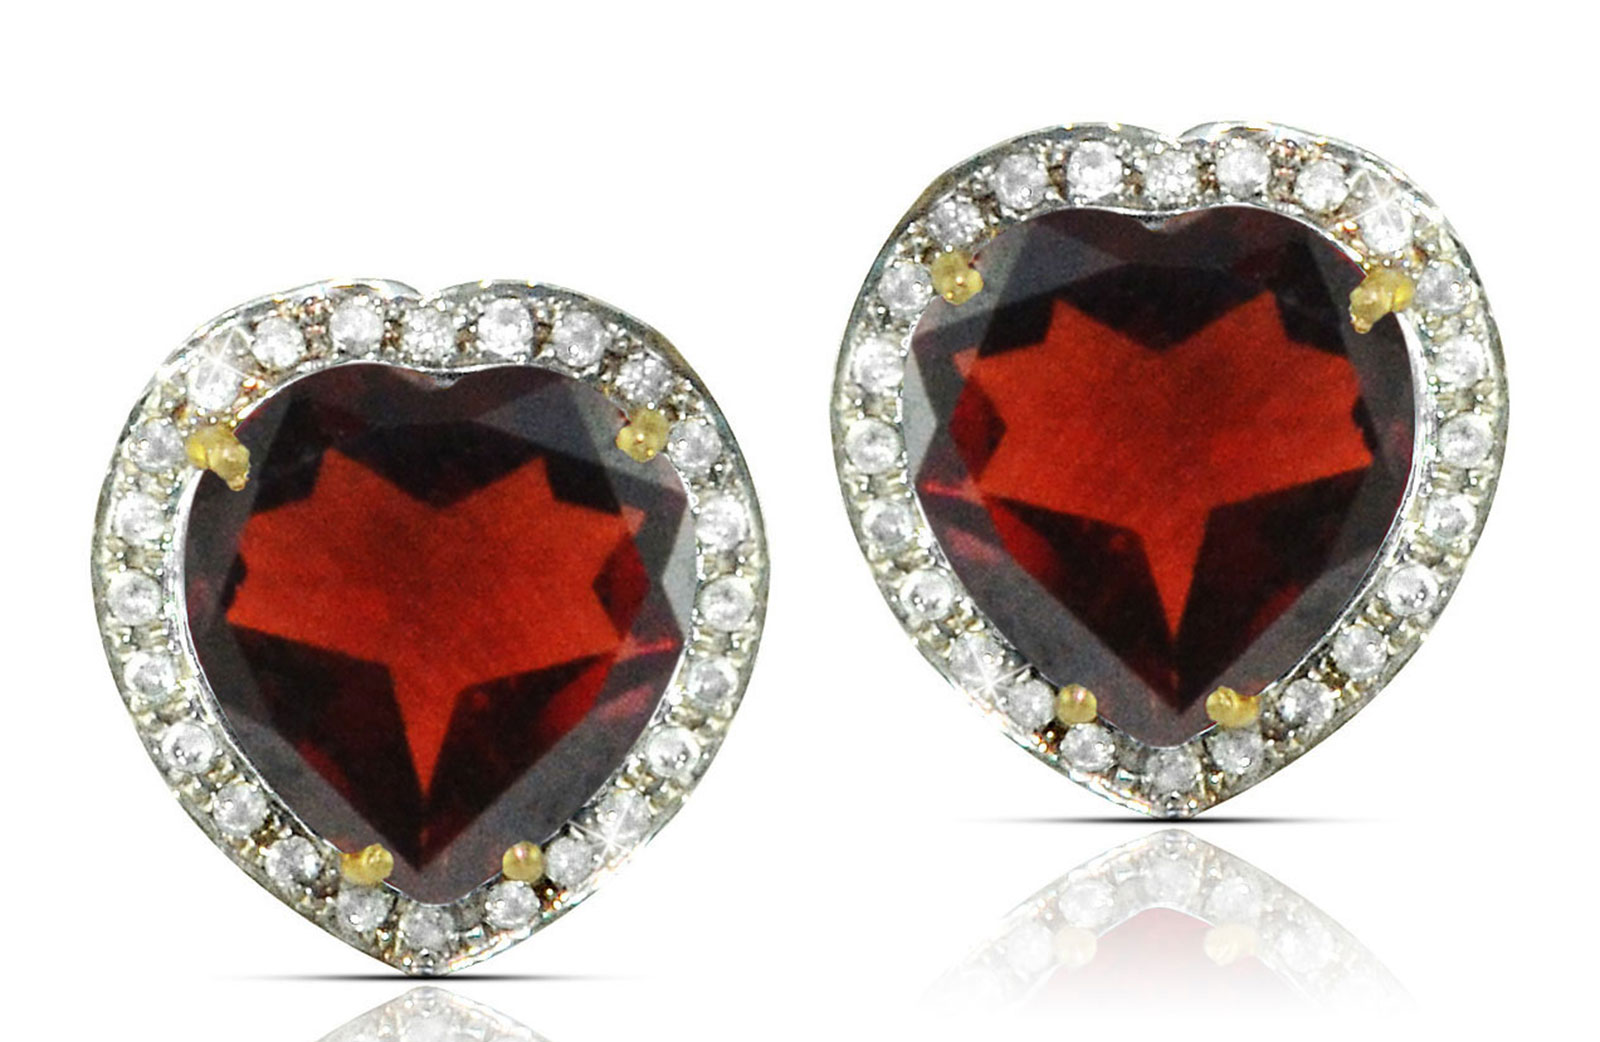 Vera Perla 18k  Gold 10mm Genuine Heart  Cut Garnet 0.28Ct Genuine Diamonds earrings